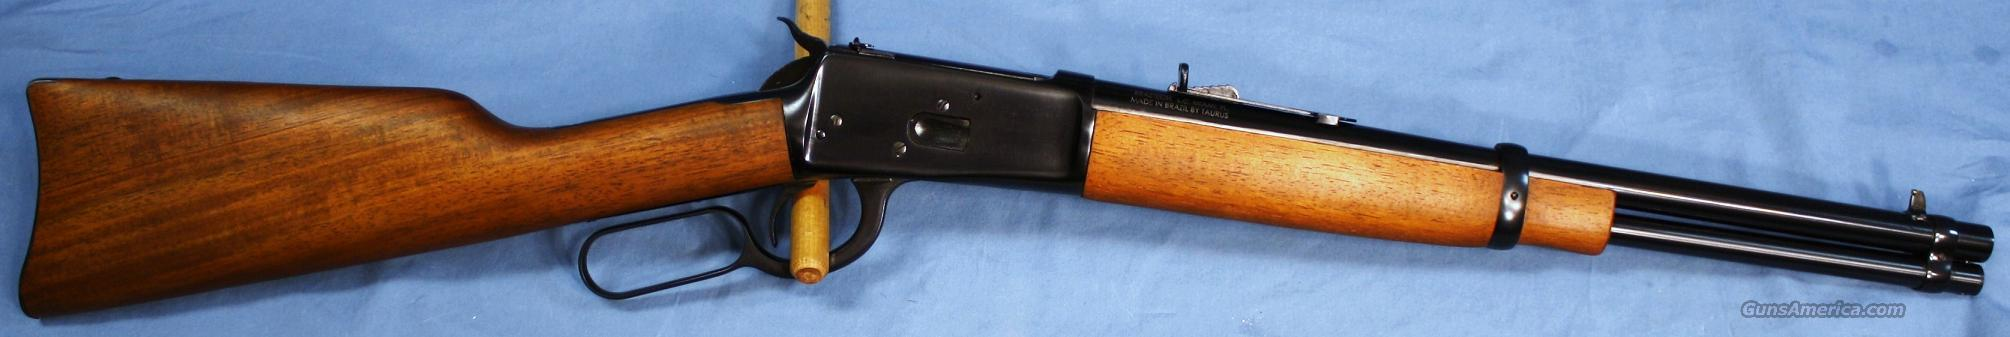 Rossi Model 92 Trapper Lever Action Rifle .357 Magnum  Guns > Rifles > Rossi Rifles > Cowboy